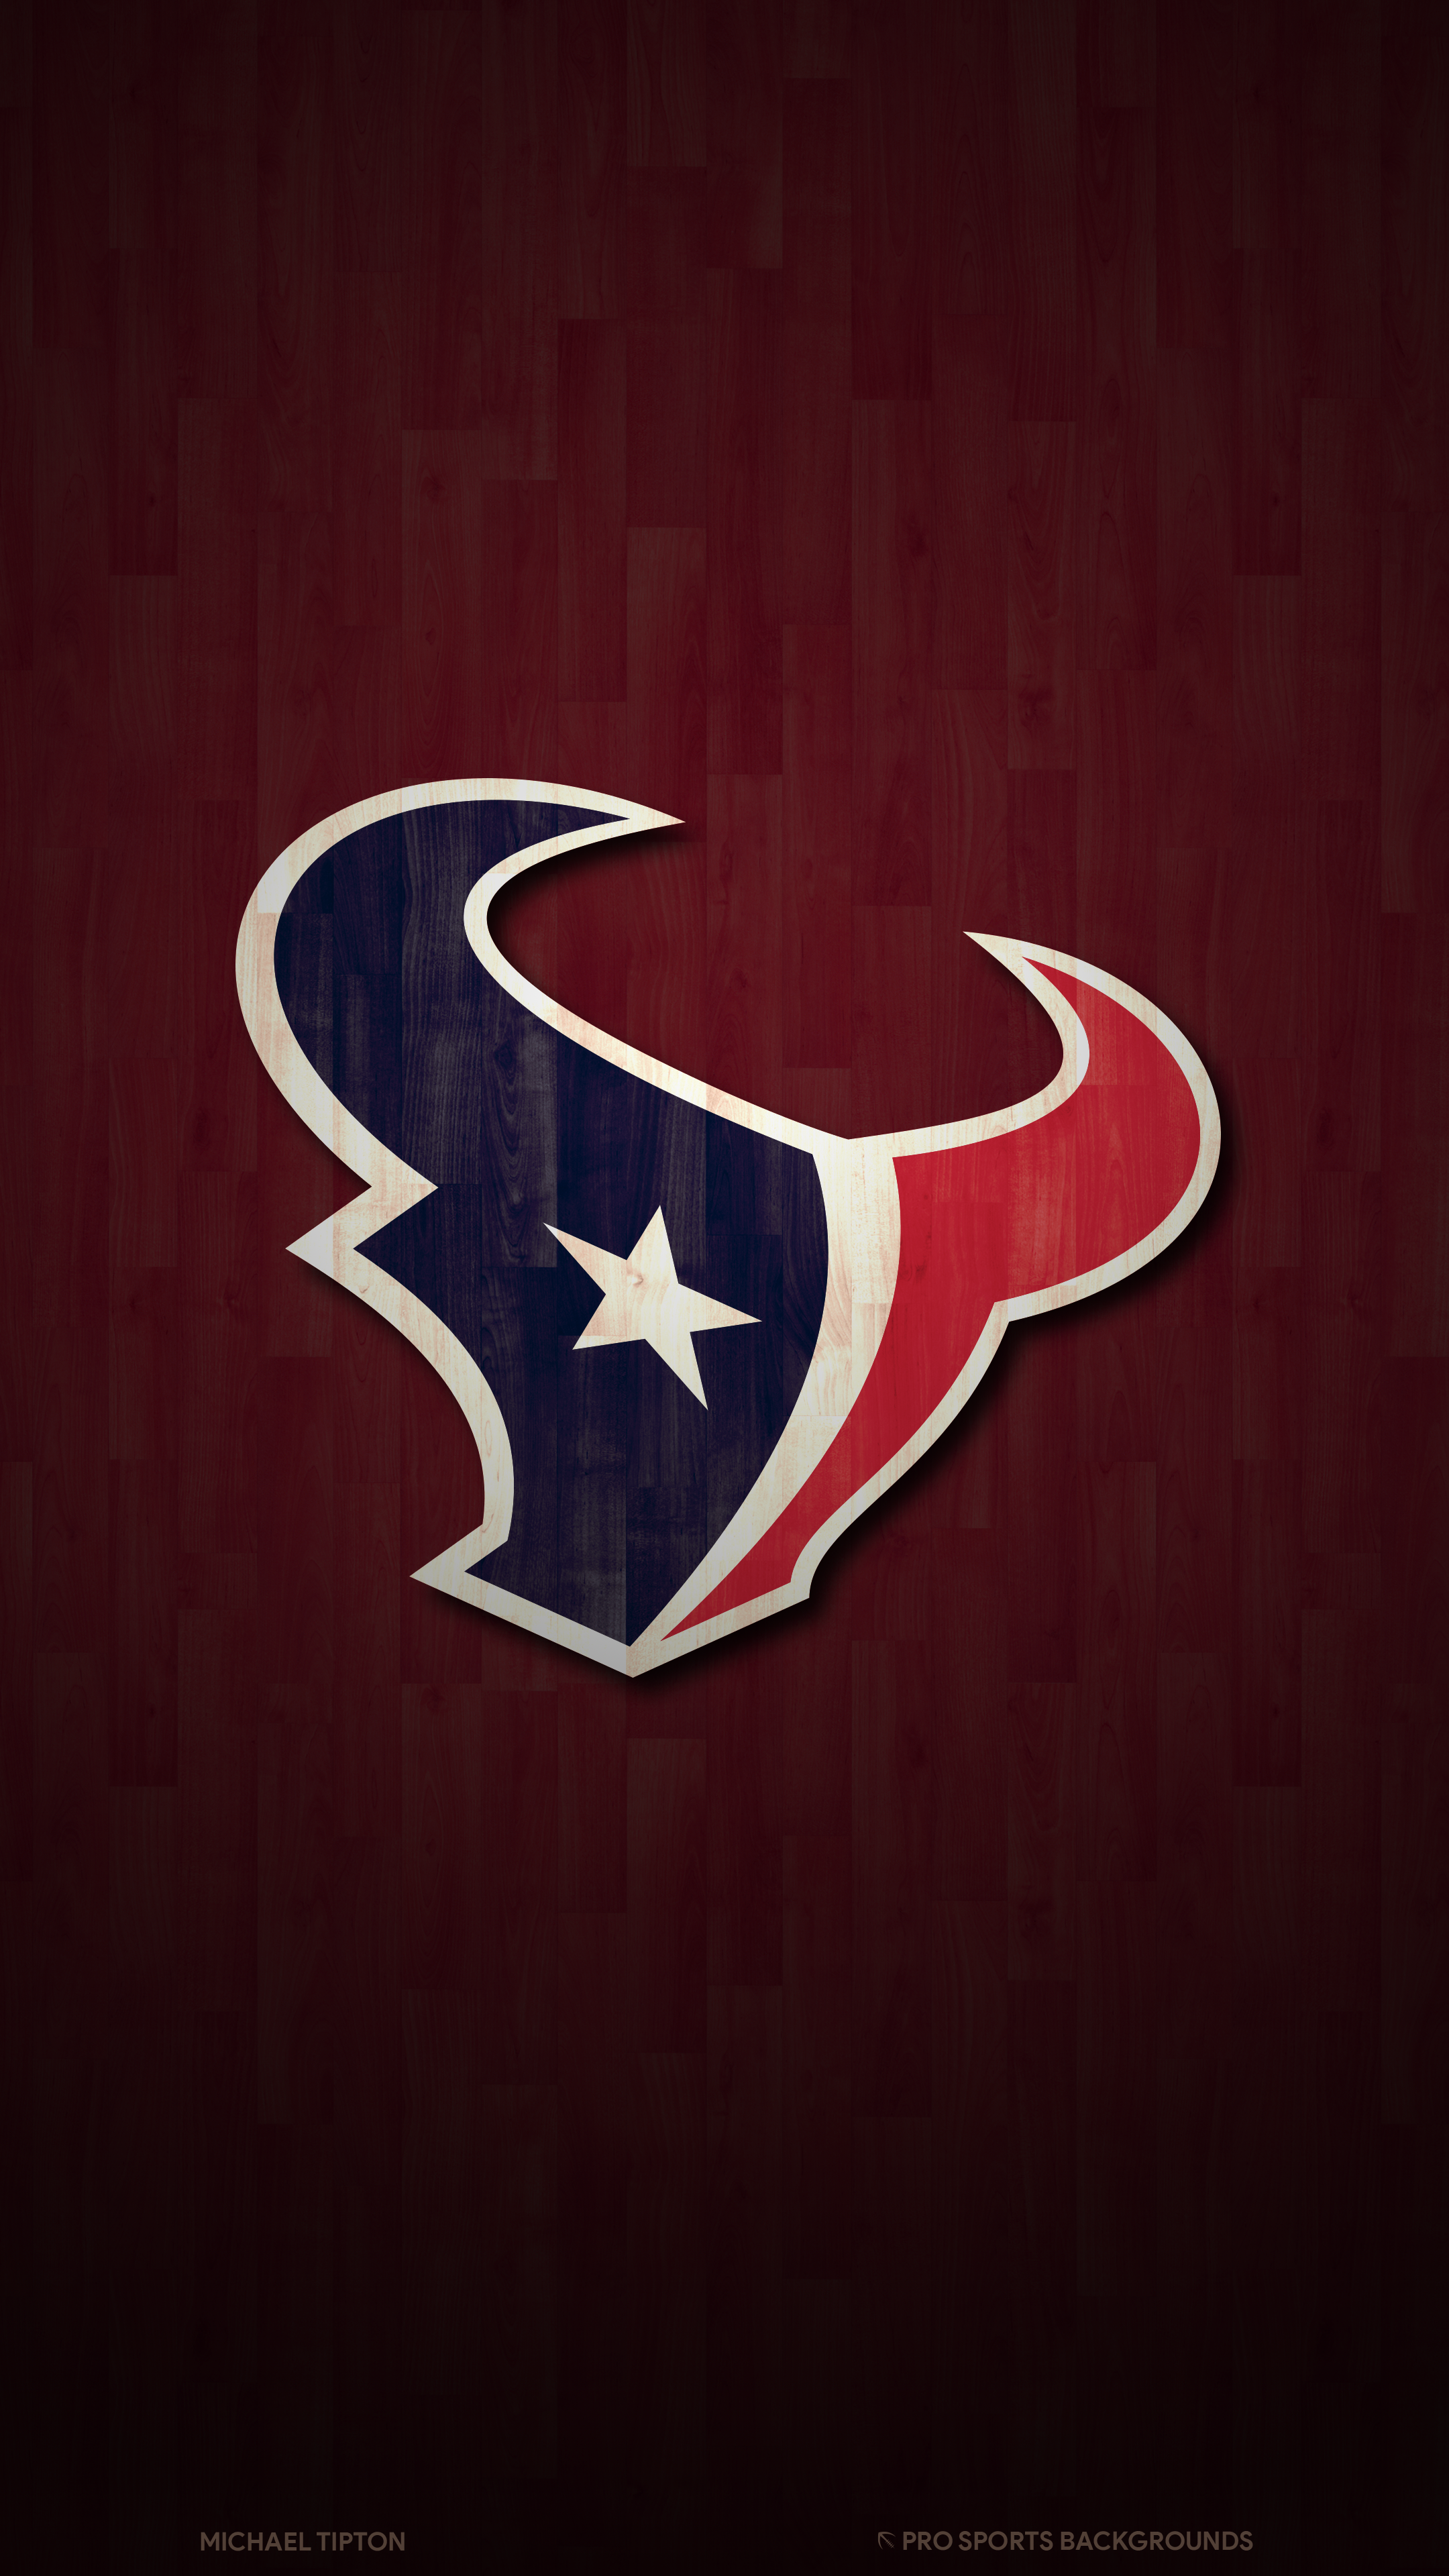 2019 Houston Texans Wallpapers in 2020 Houston texans